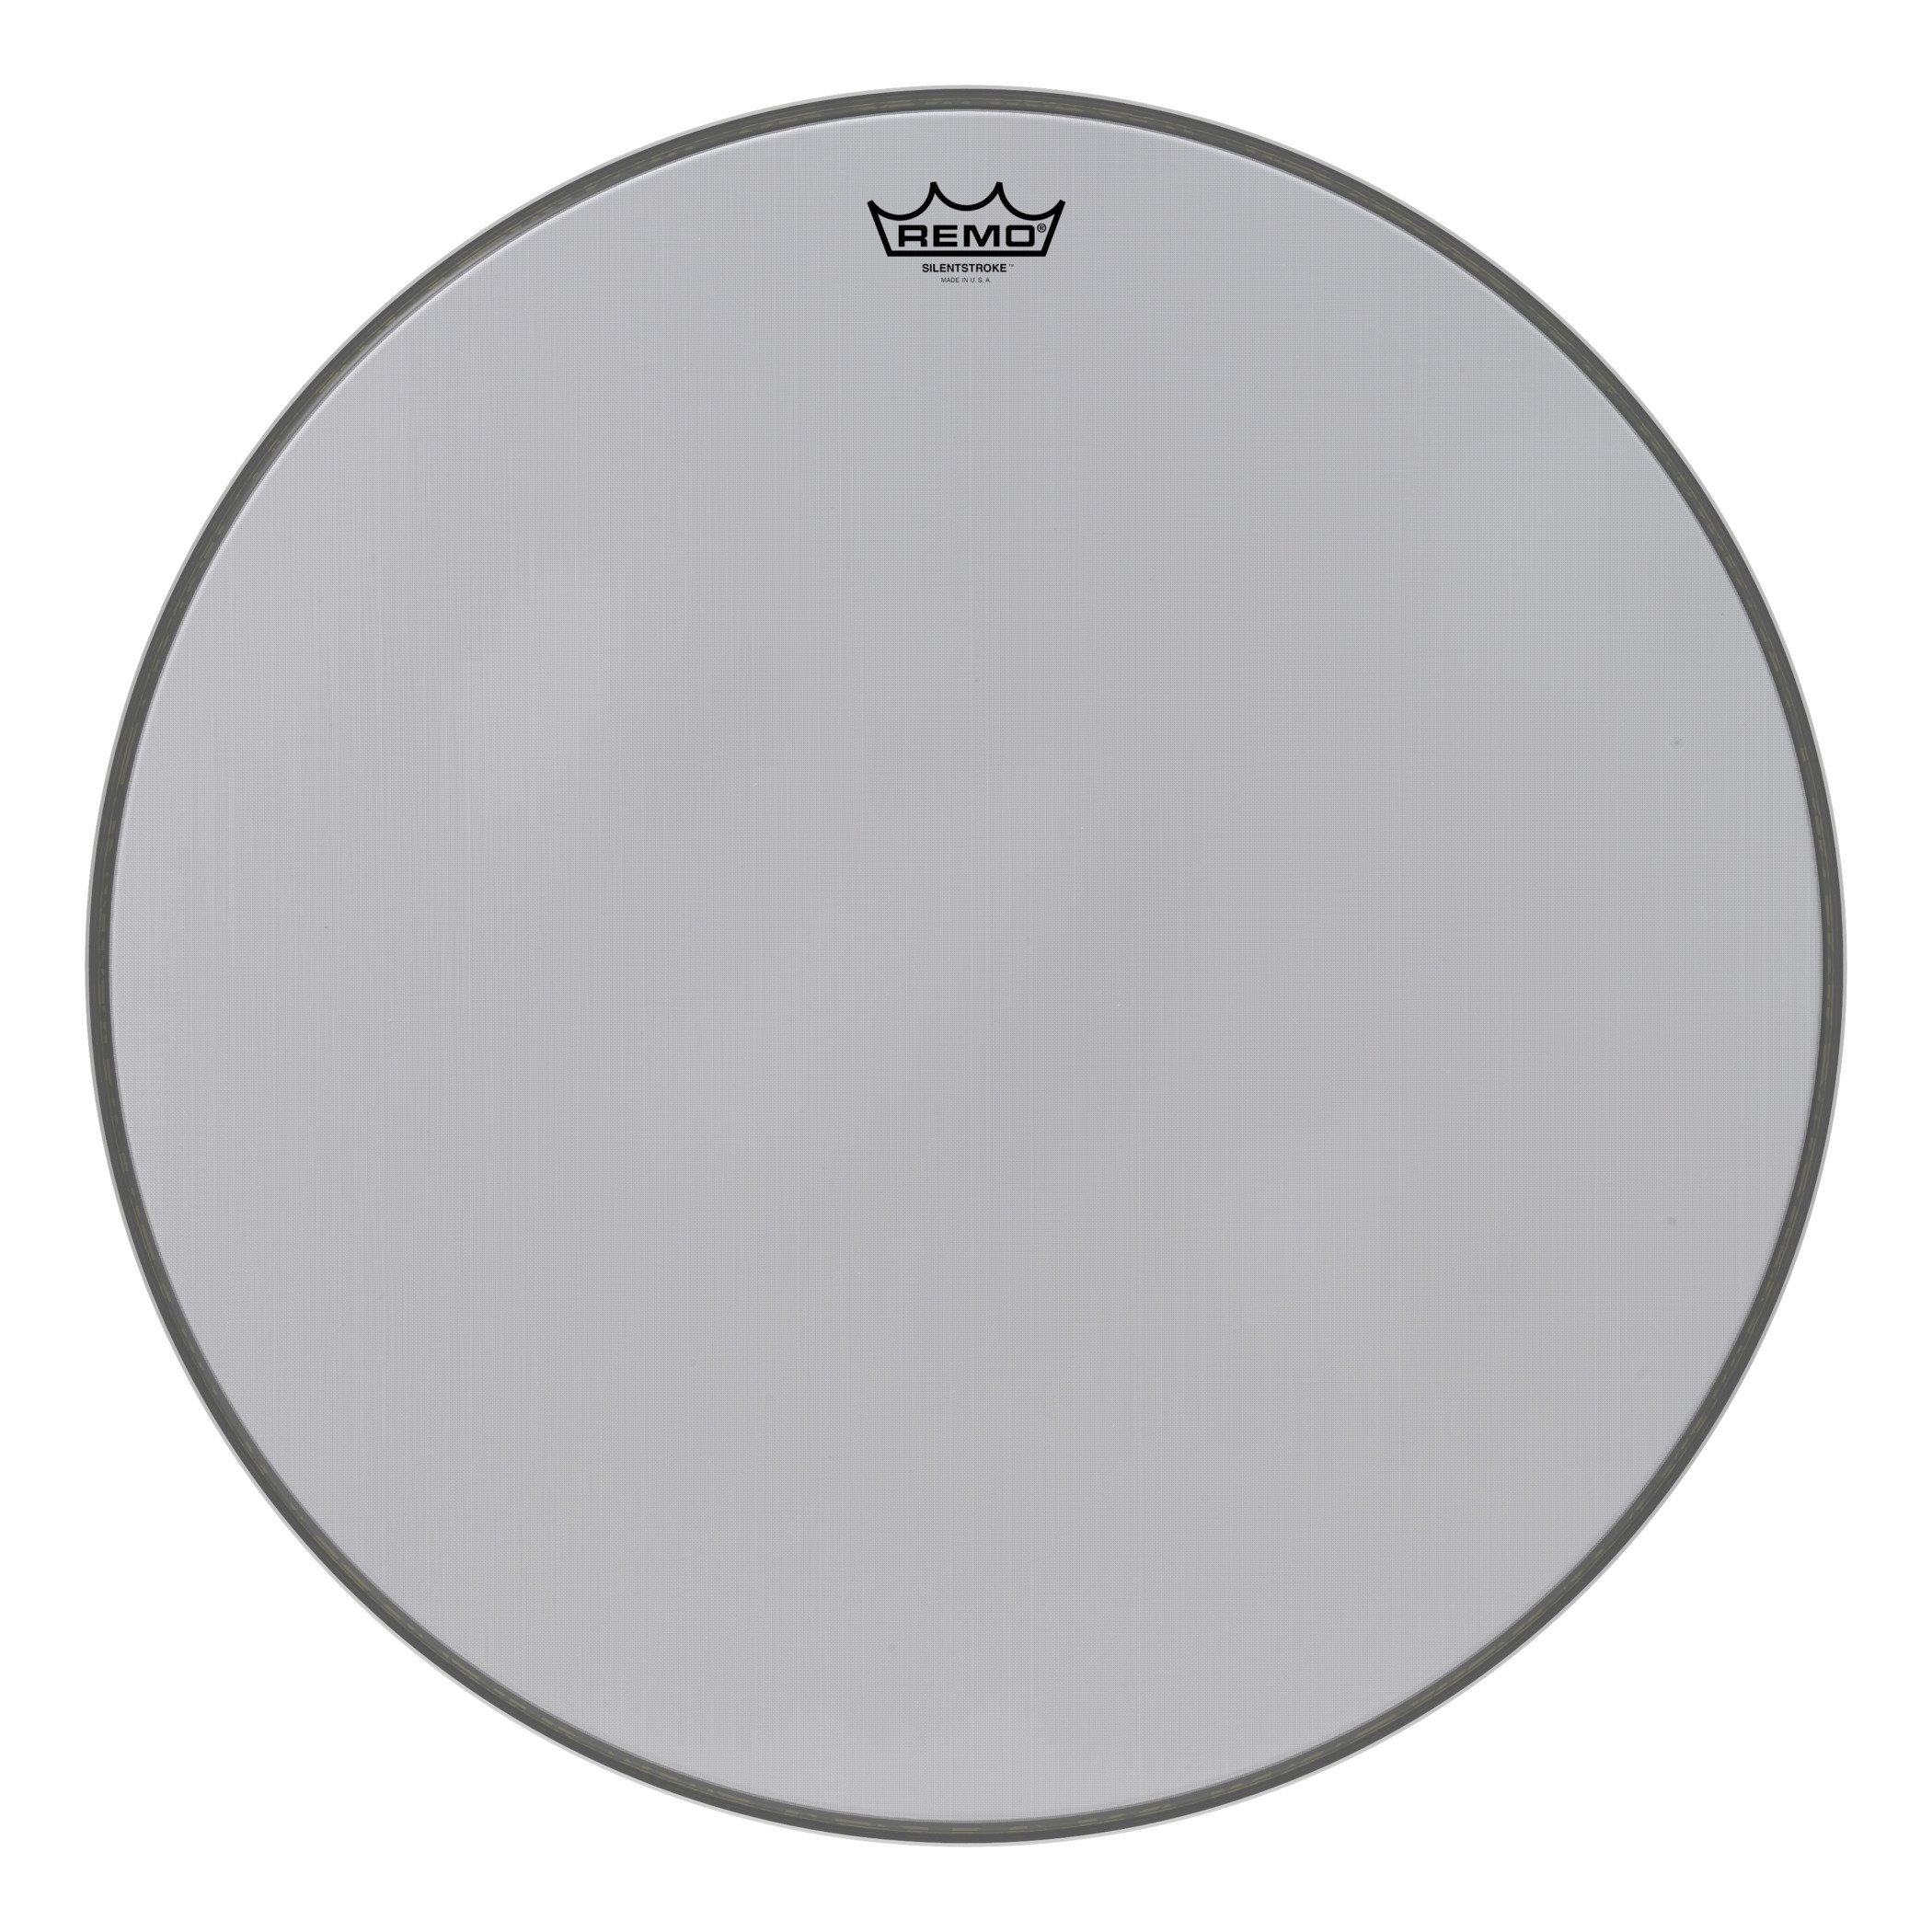 Remo Silentstroke Bass Drumhead, 22''